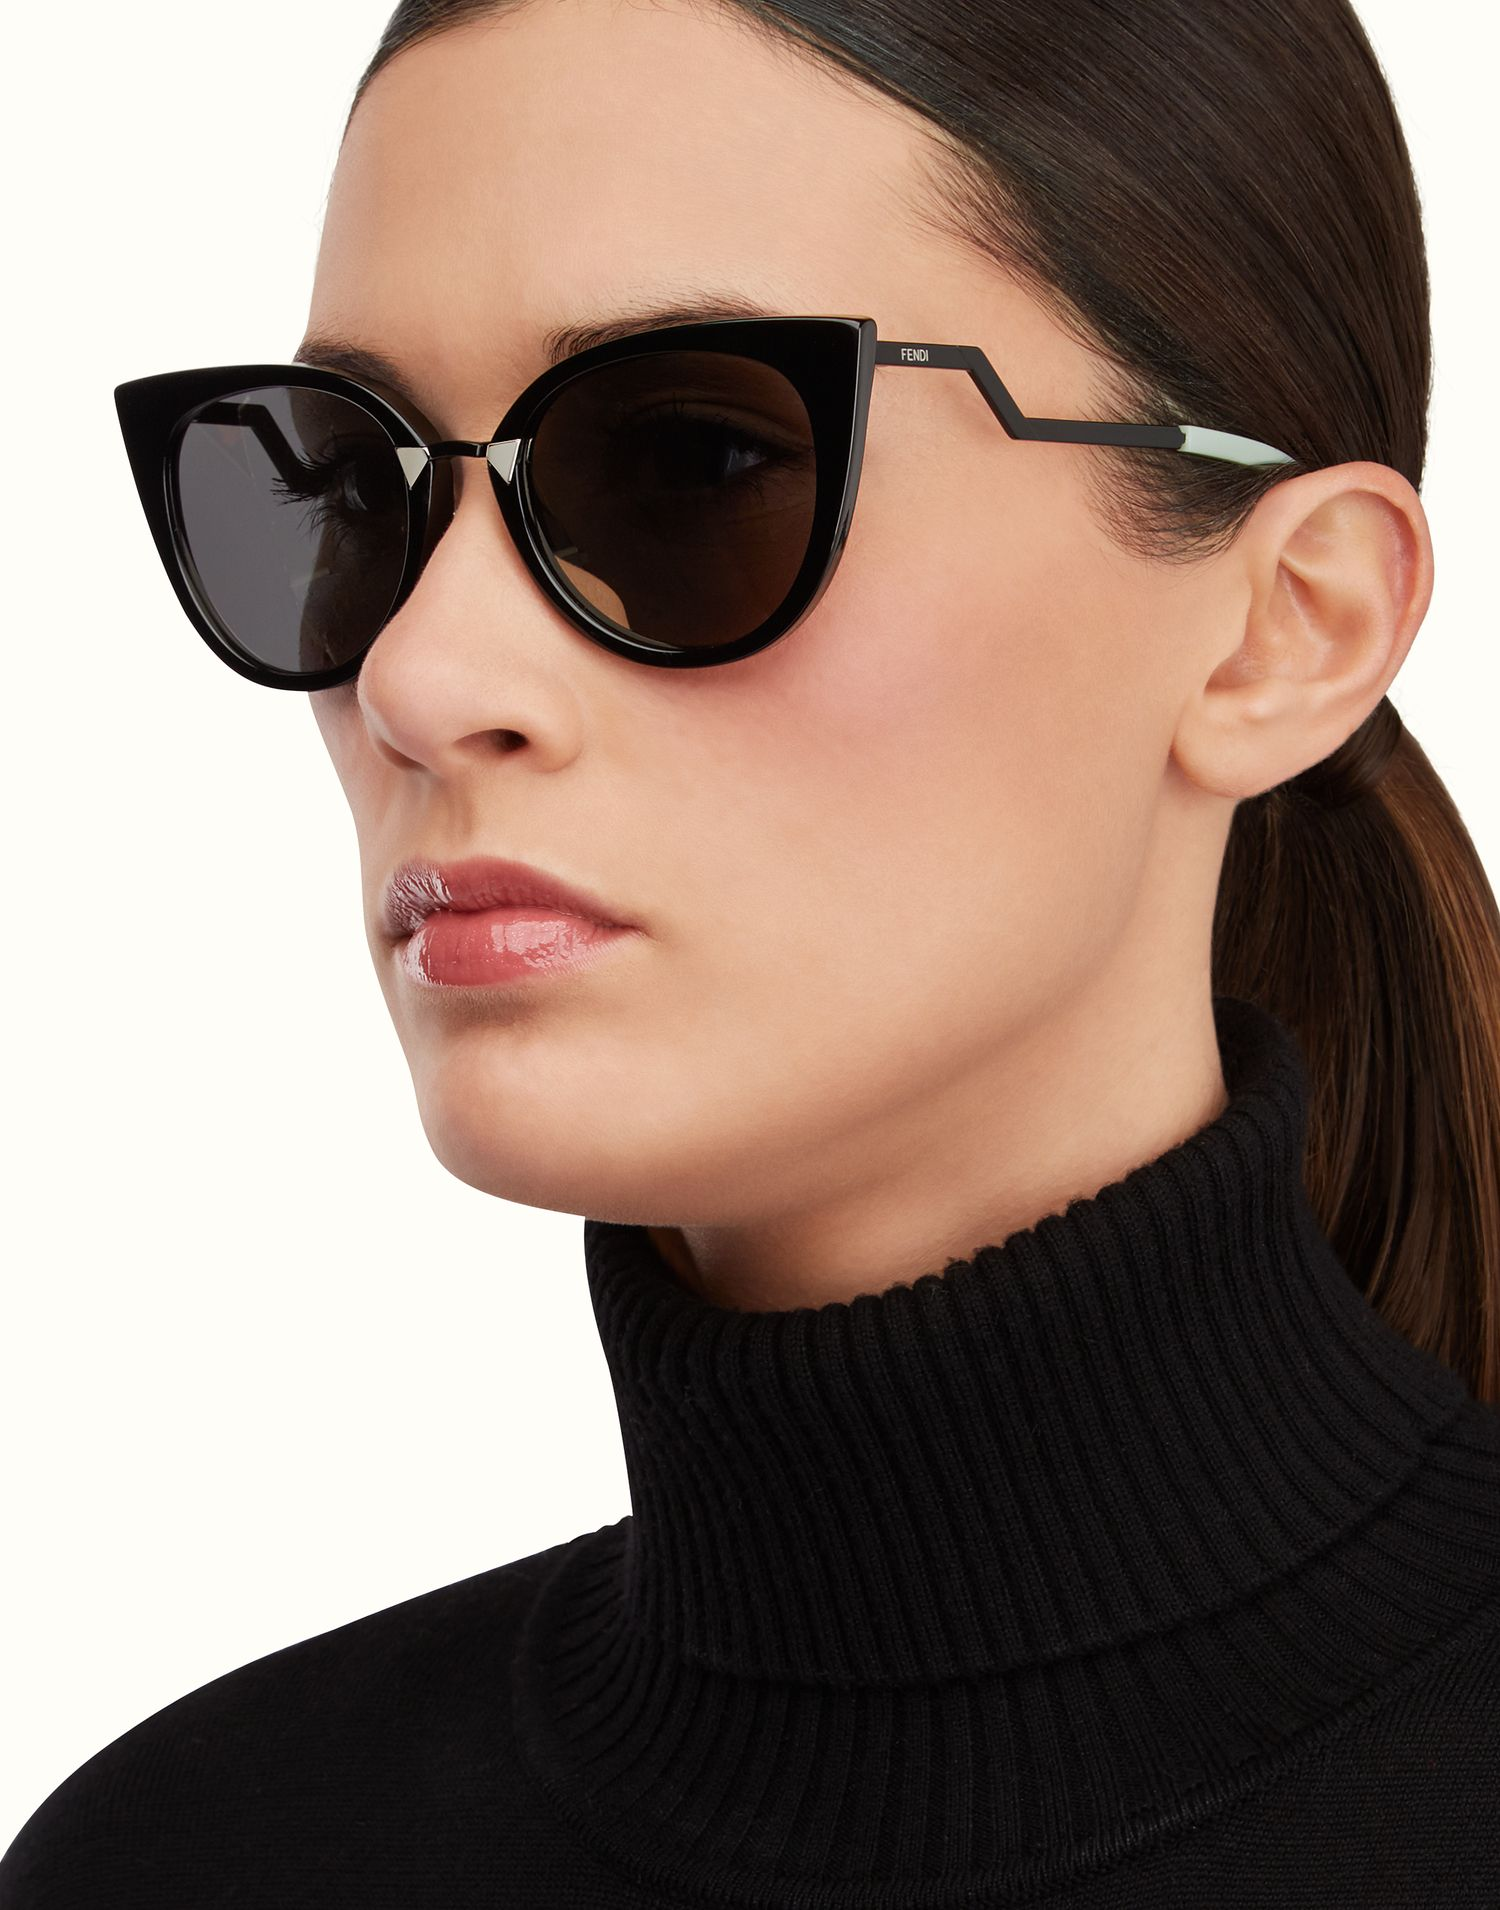 fendi cat eye sunglasses sale aa2n  FENDI  ORCHIDEA Cat-eye sunglasses